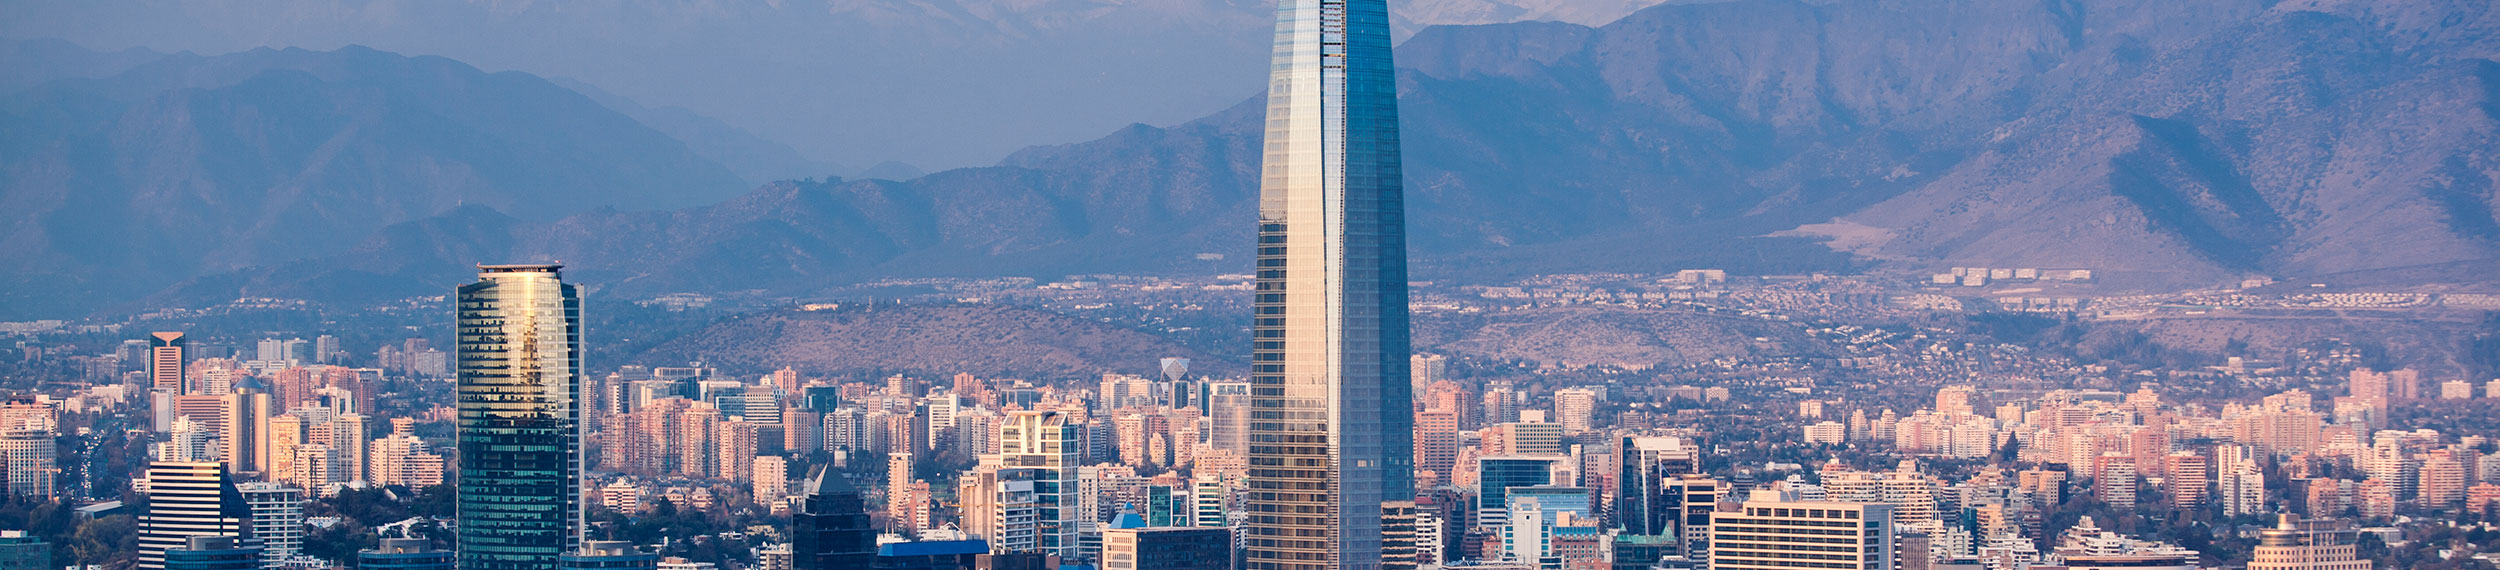 Aerial view of the financial district with mountains in the background in Santiago, Chile.